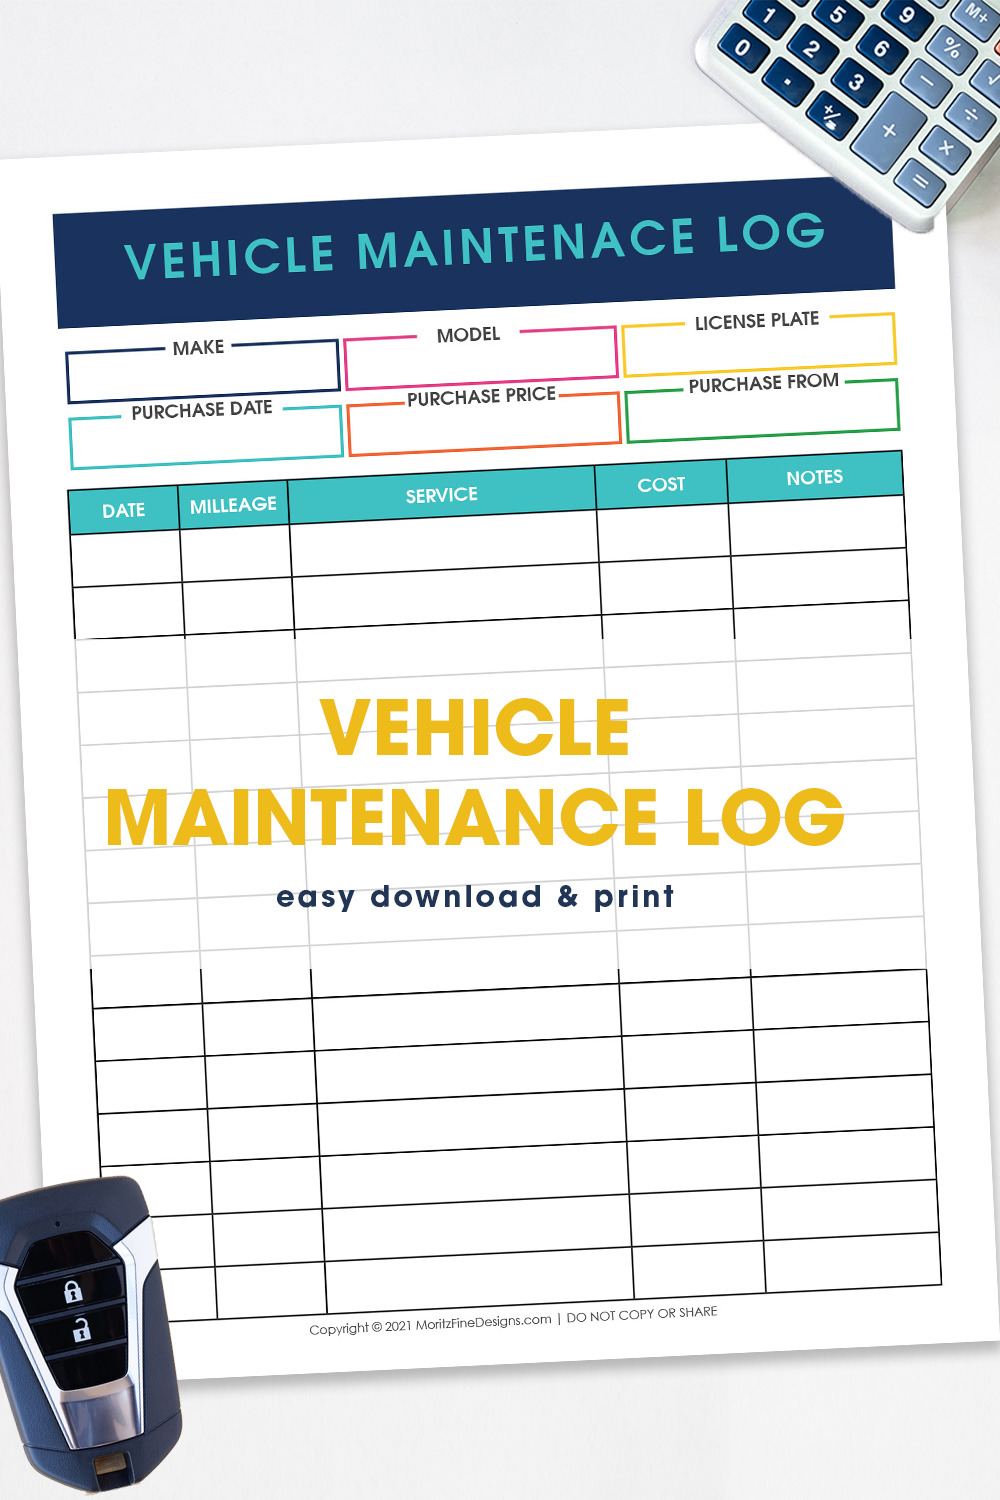 Track all maintenance and repairs that you do to your vehicle with this free editable Vehicle Maintenance Log.